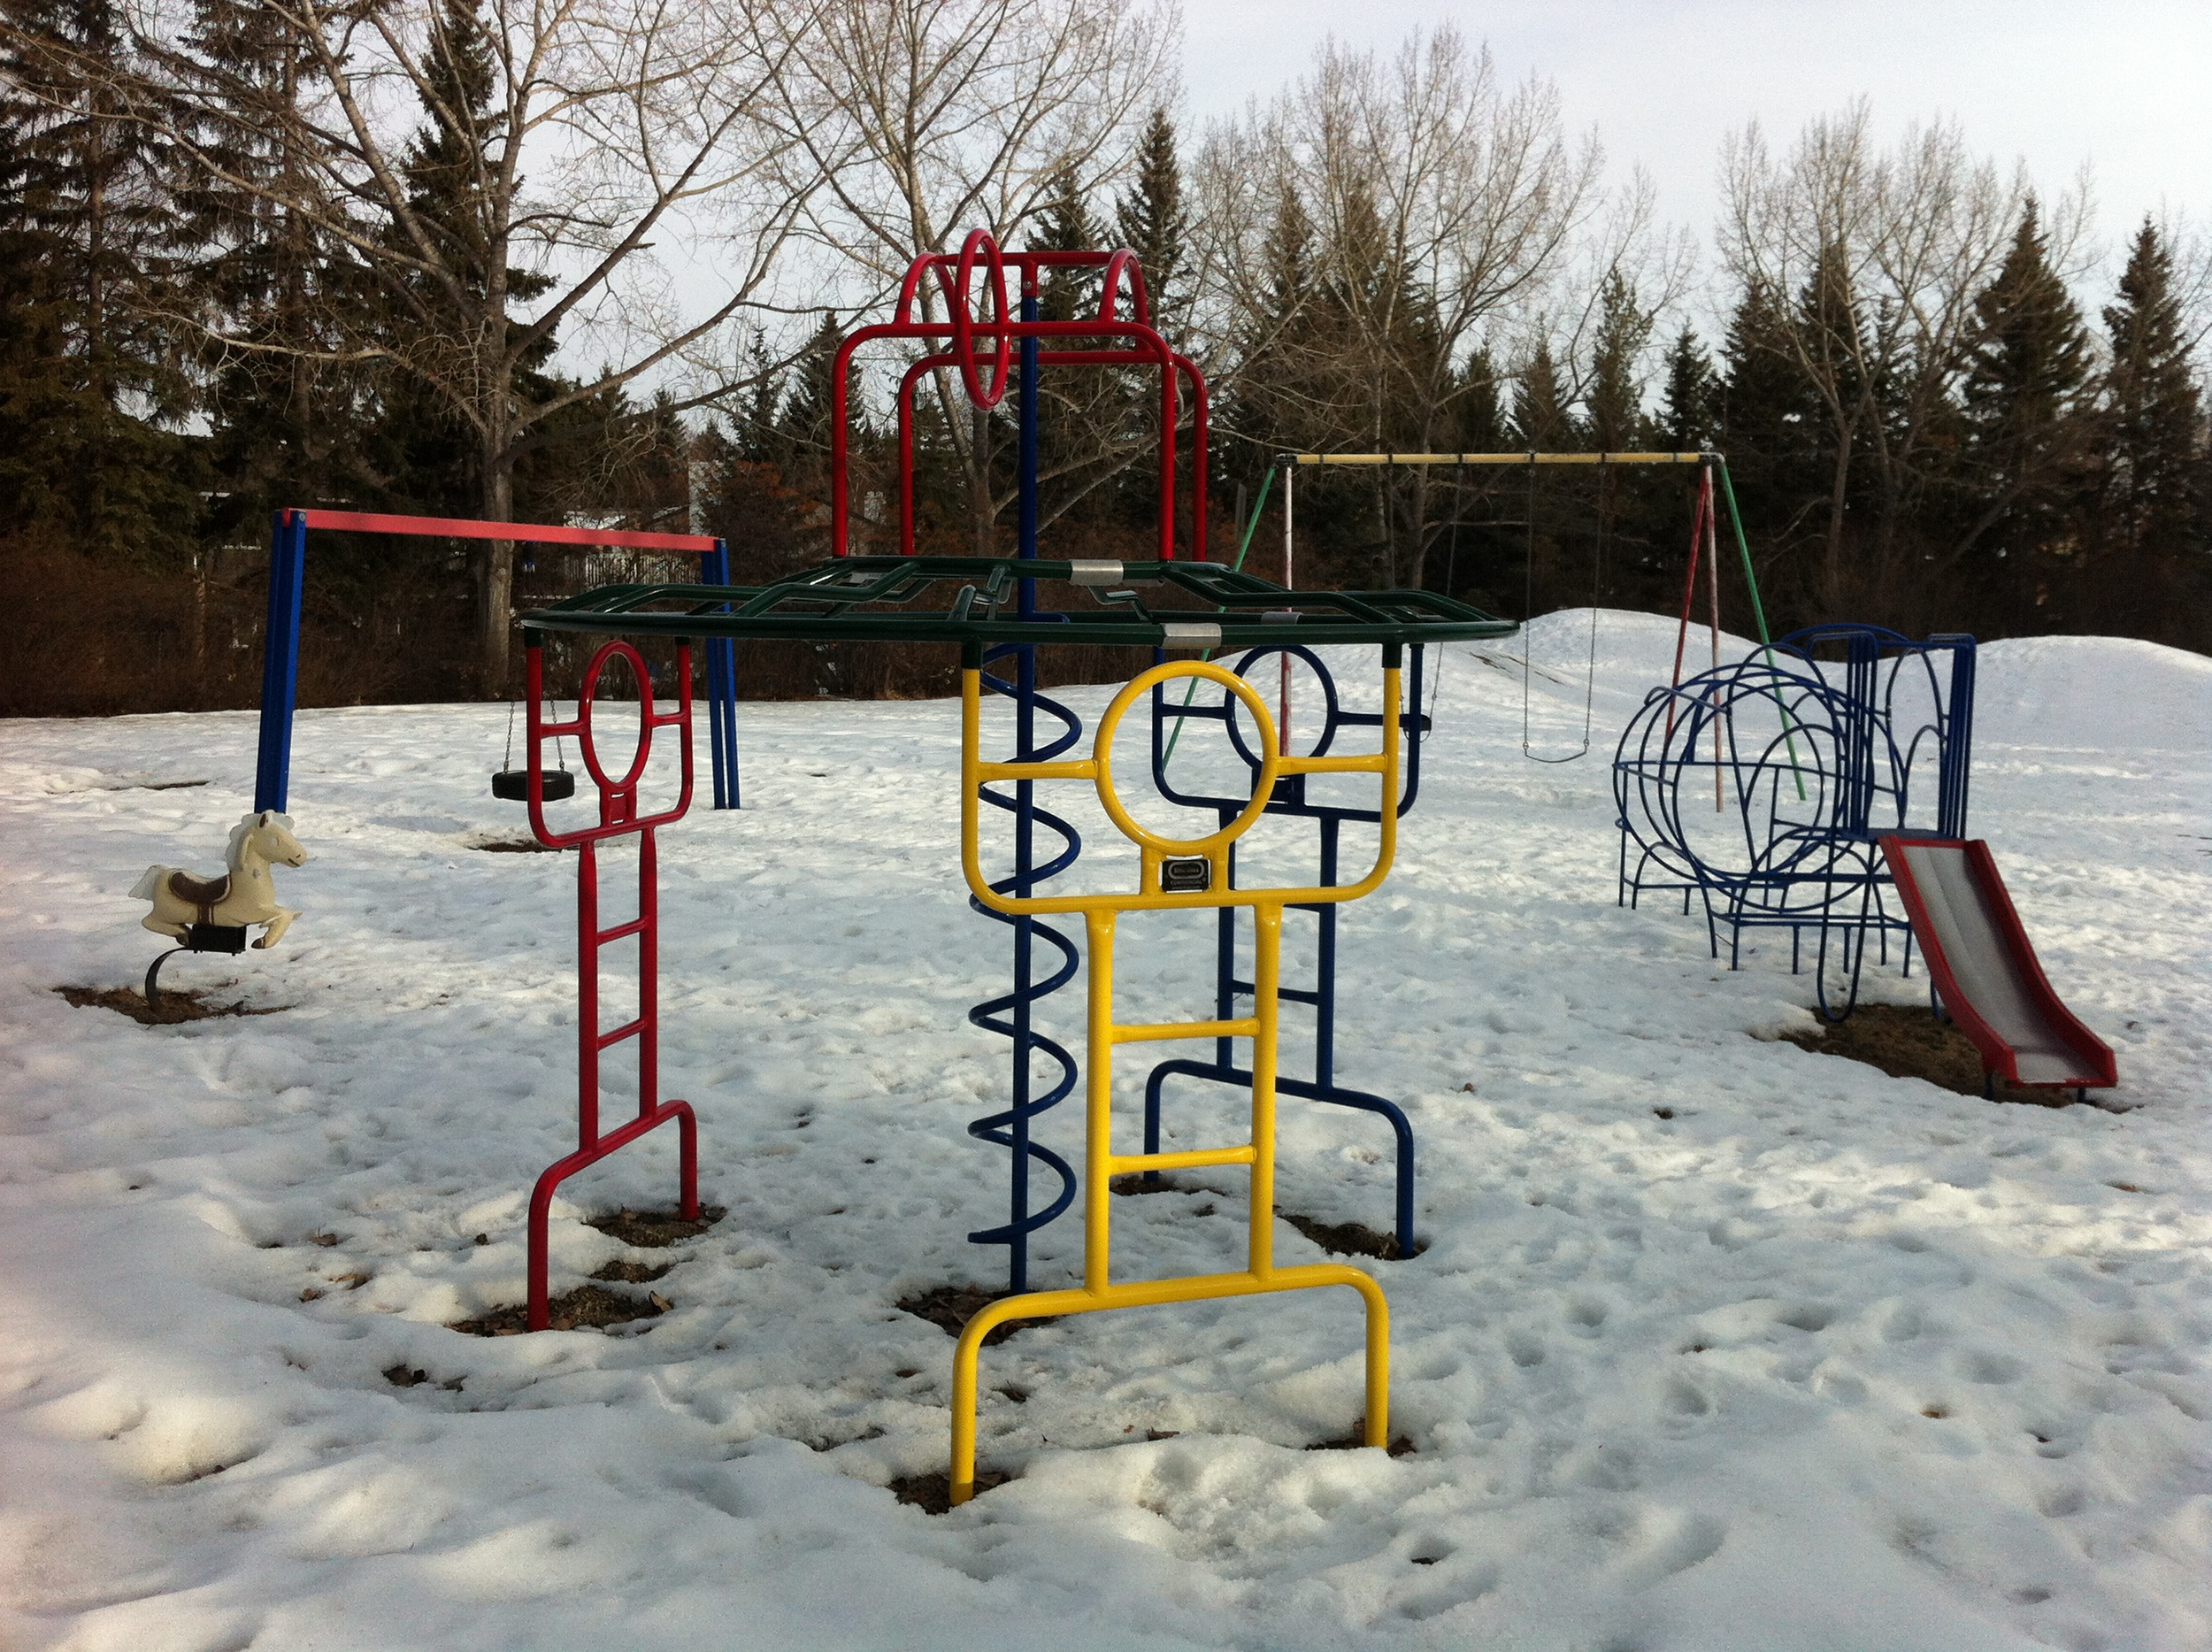 Lakeview's hidden playground with simple retro playground equipment - rocking horse and small metal slide.